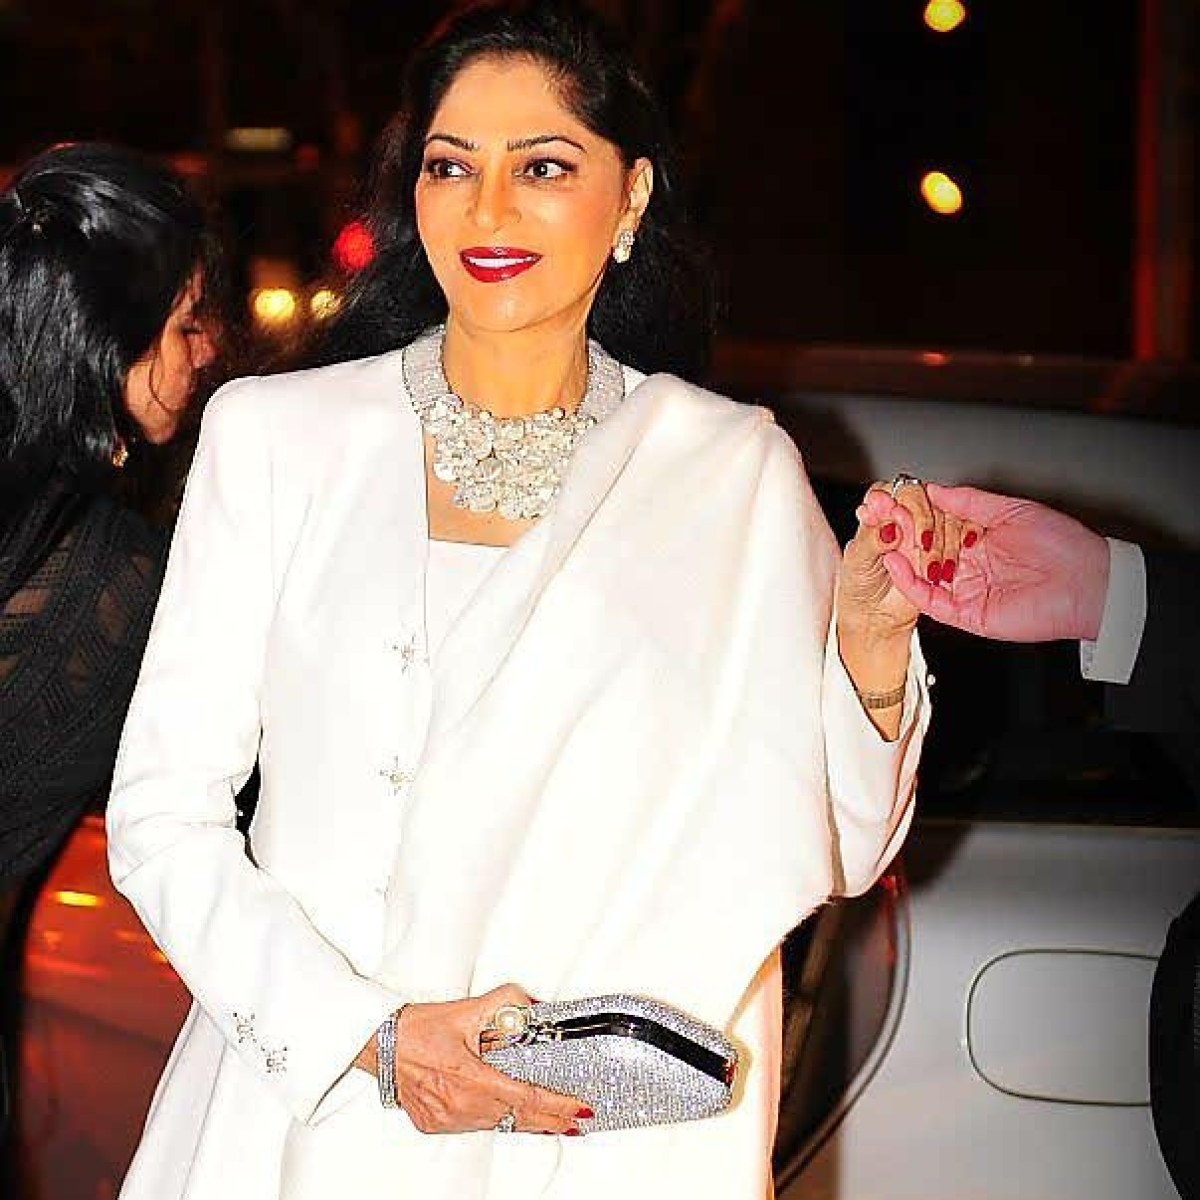 Simi Garewal says a 'powerful' person viciously tried to destroy her career; applauds Kangana Ranaut's bravery